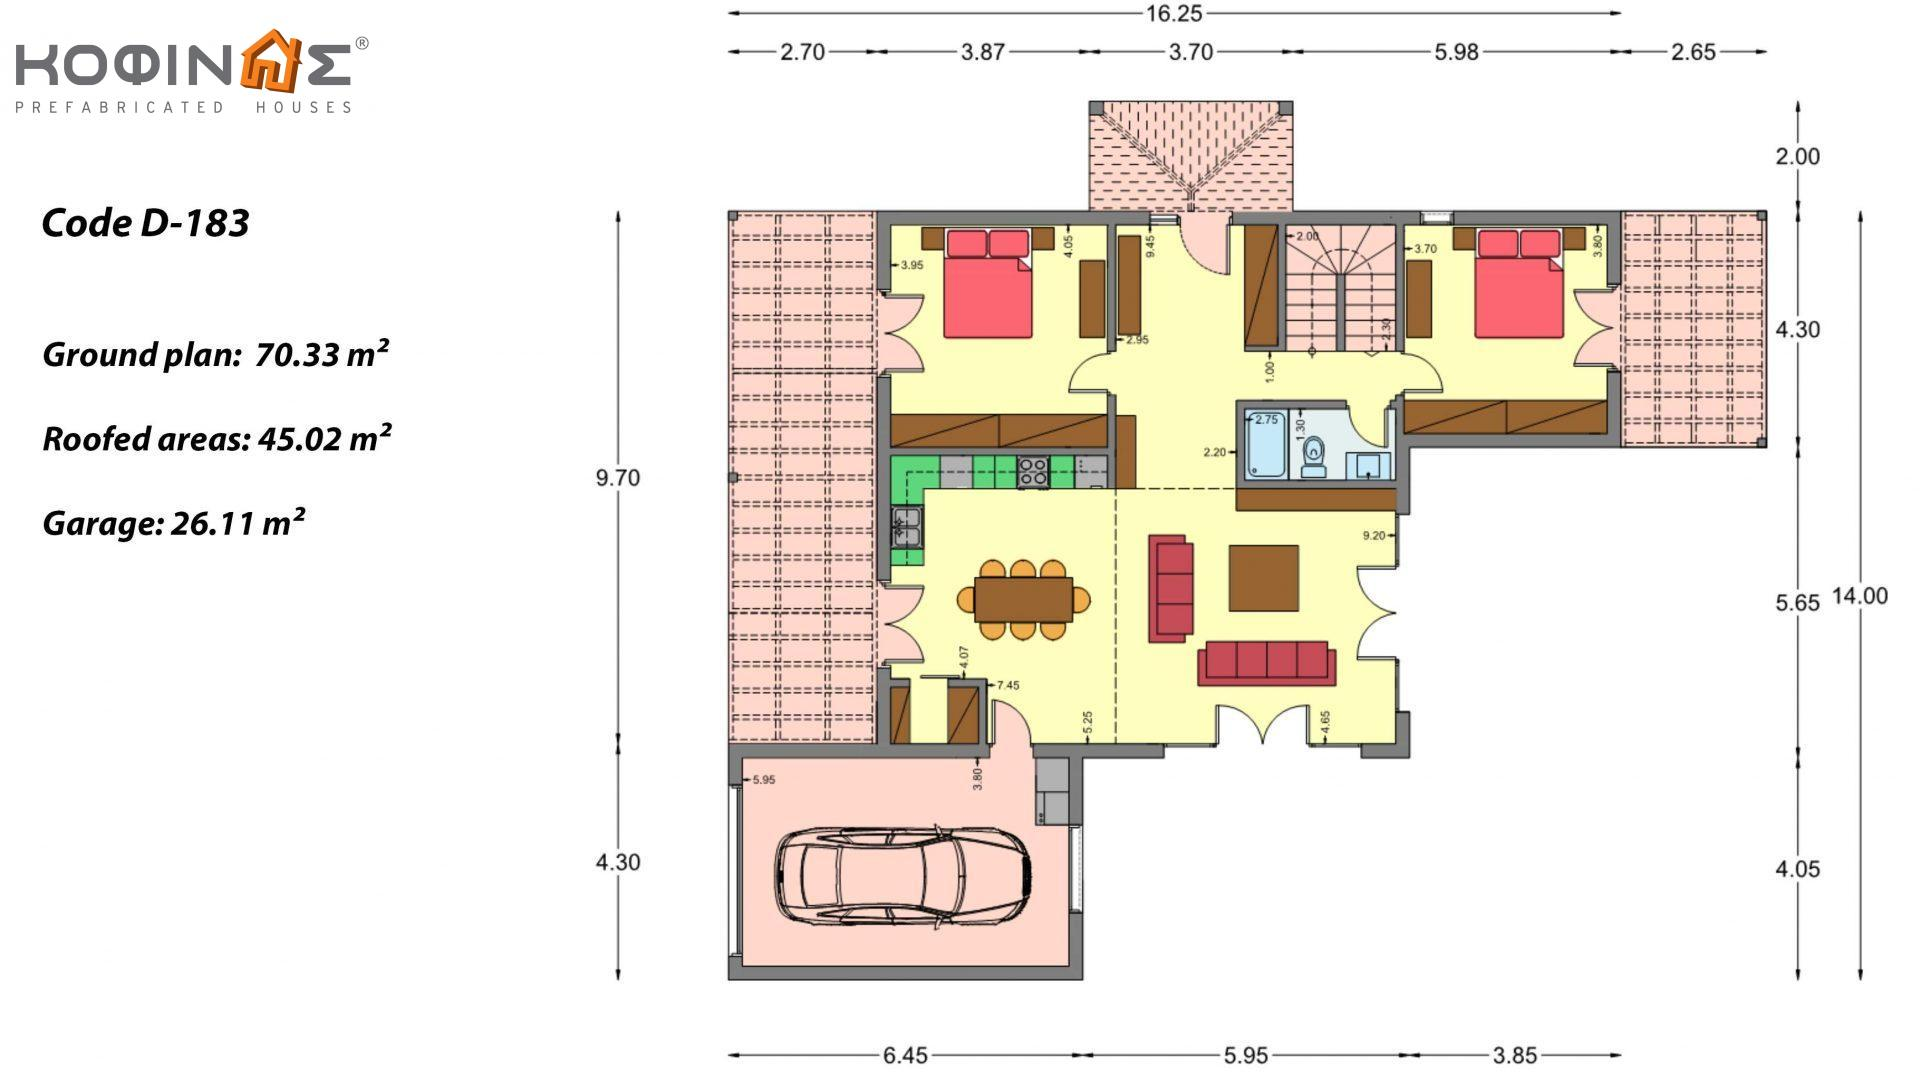 2-story house D 183, total area 183.34 m²., +garage 26.11 m²(= 209,45 m²),  covered areas 45.02 m², and balcony (case B) 16.56 m²